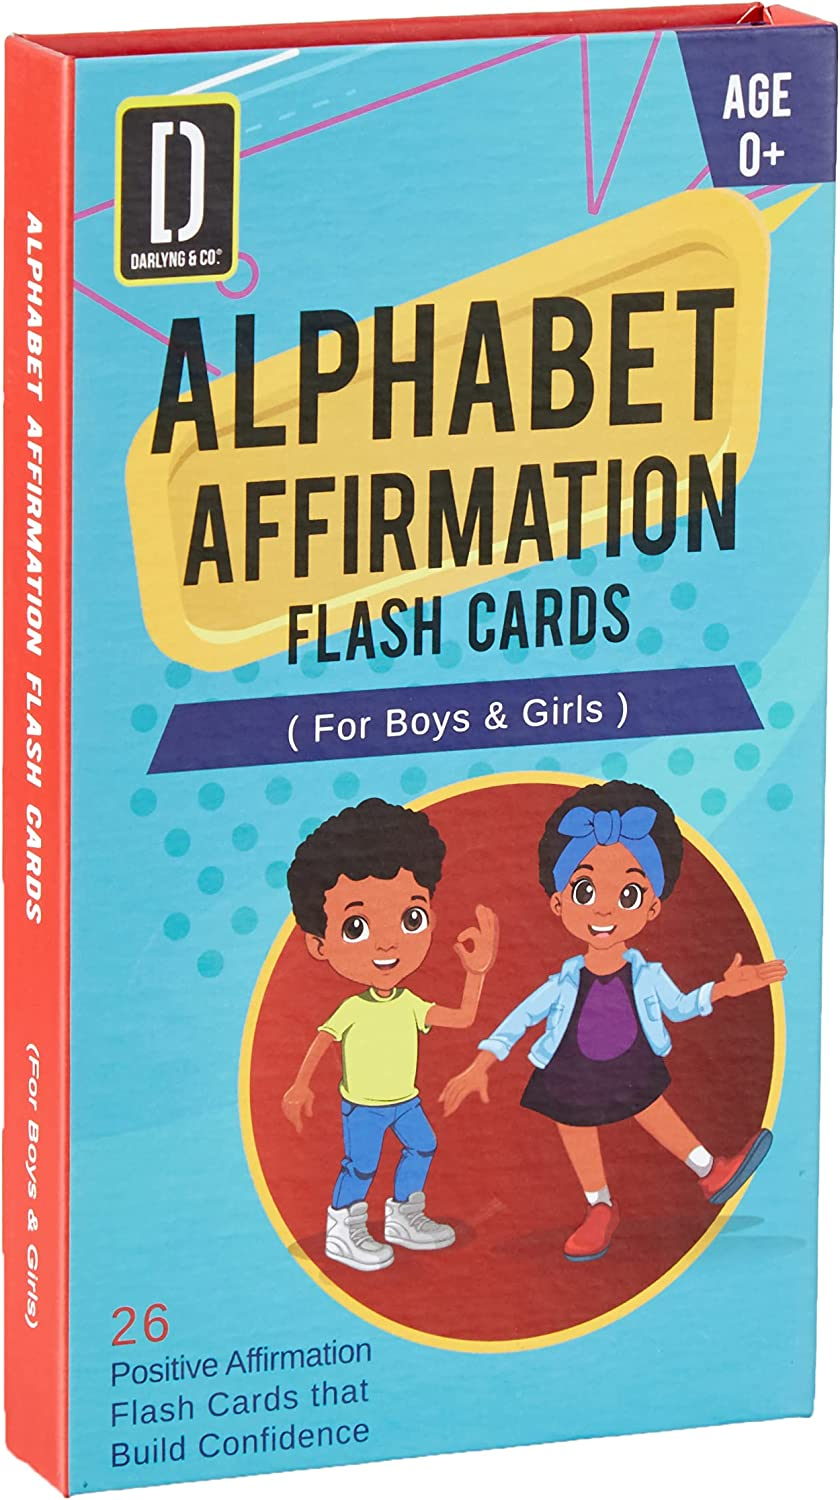 Darlyng Co.'s Modern Alphabet Affirmation Flash for Kids Easy-to-use Very popular Cards